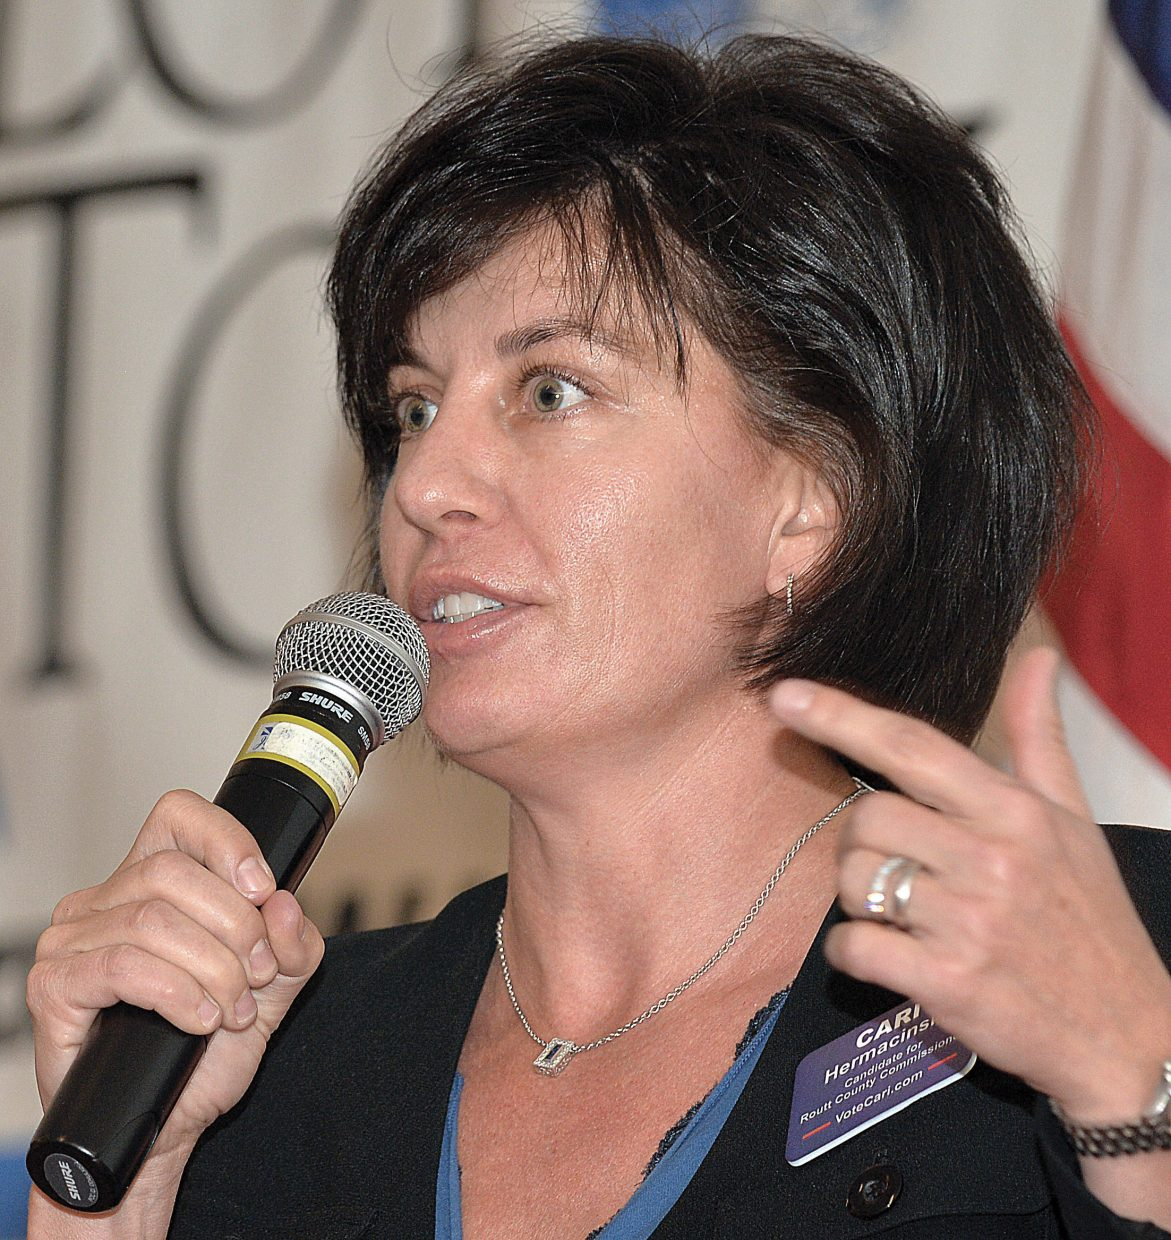 Colorado Governor John Hickenlooper has appointed Routt County Board of Commissioners Chairwoman Cari Hermacinski to serve on the Energy/Mineral Impact Assistance Fund Advisory Committee, which makes recommendations on granting requests that come in from all over Colorado.